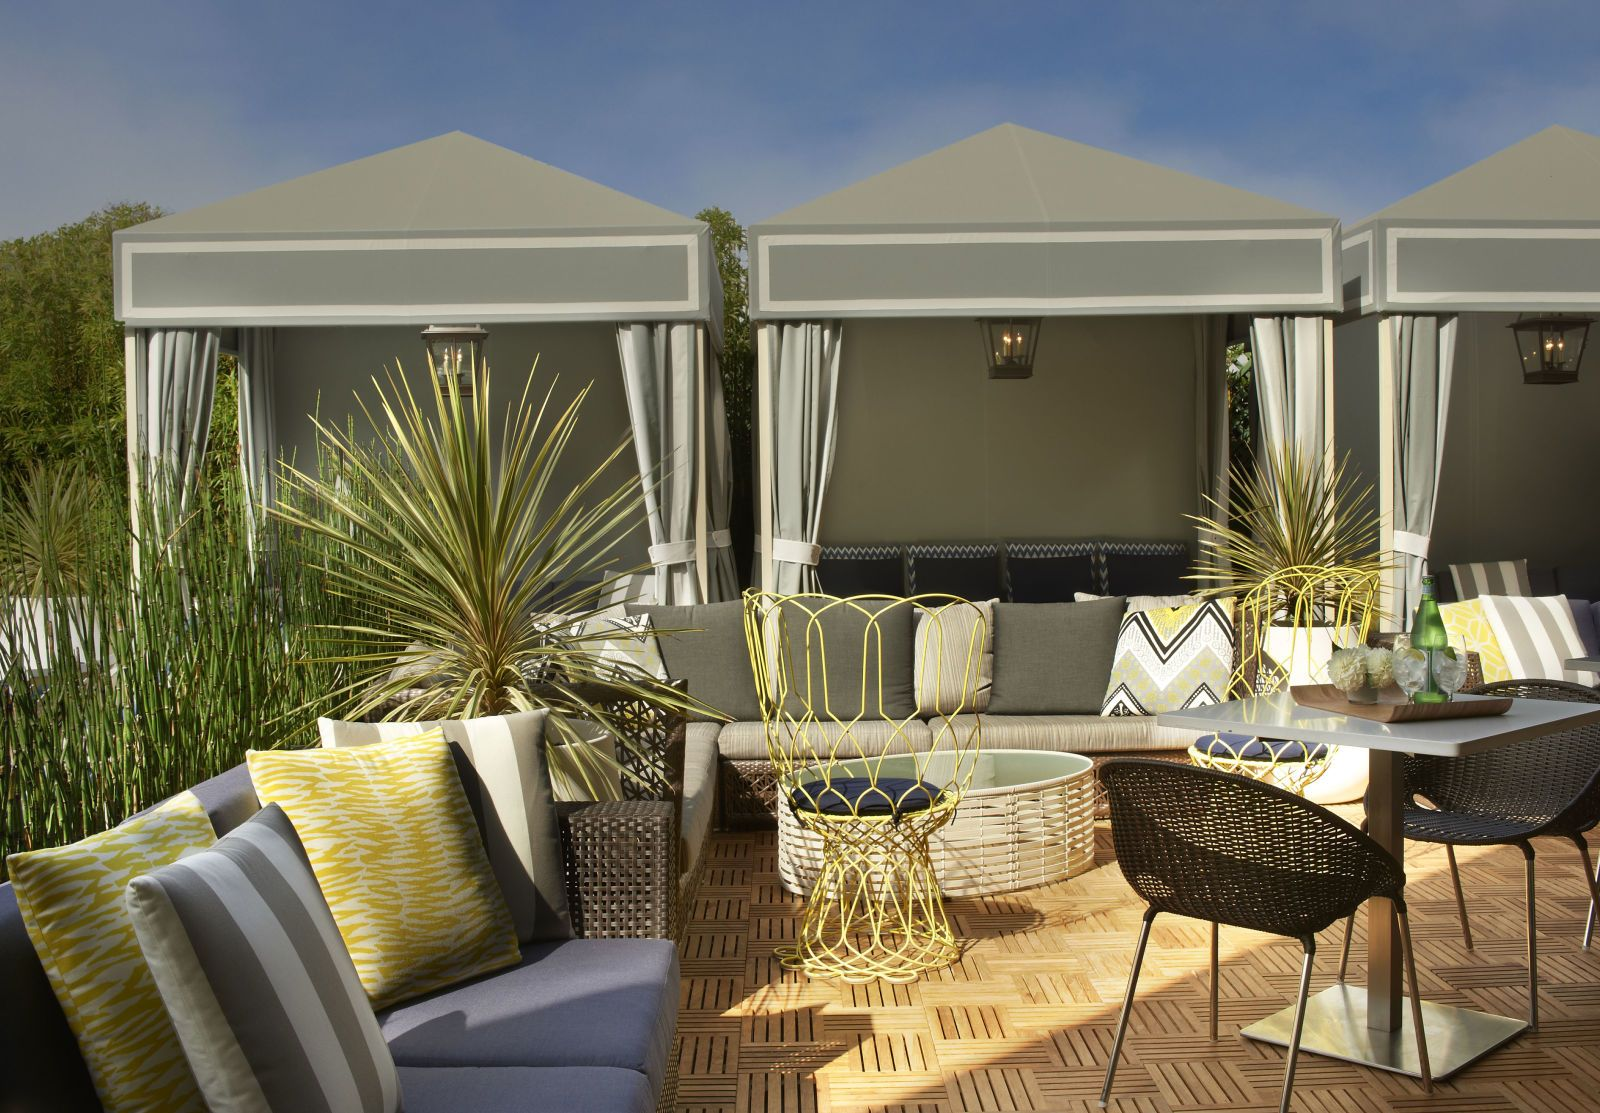 The Best Hotel Staycation Packages Santa monica, Outdoor